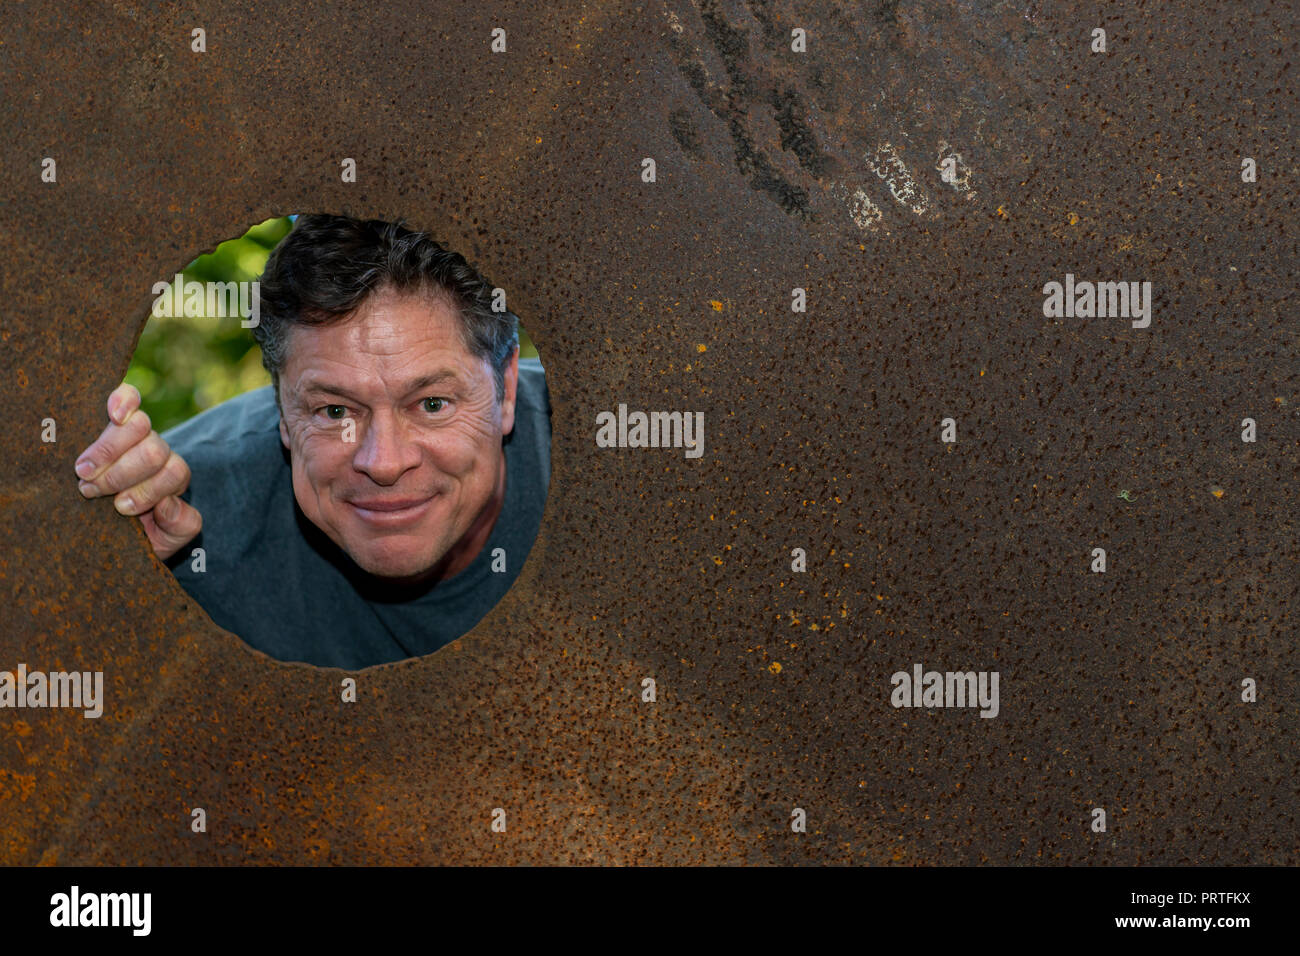 Handsome mature man in the iron plate hole, looking away, grins, happy, contented, nature background with a copy of the space, for advertising. - Stock Image